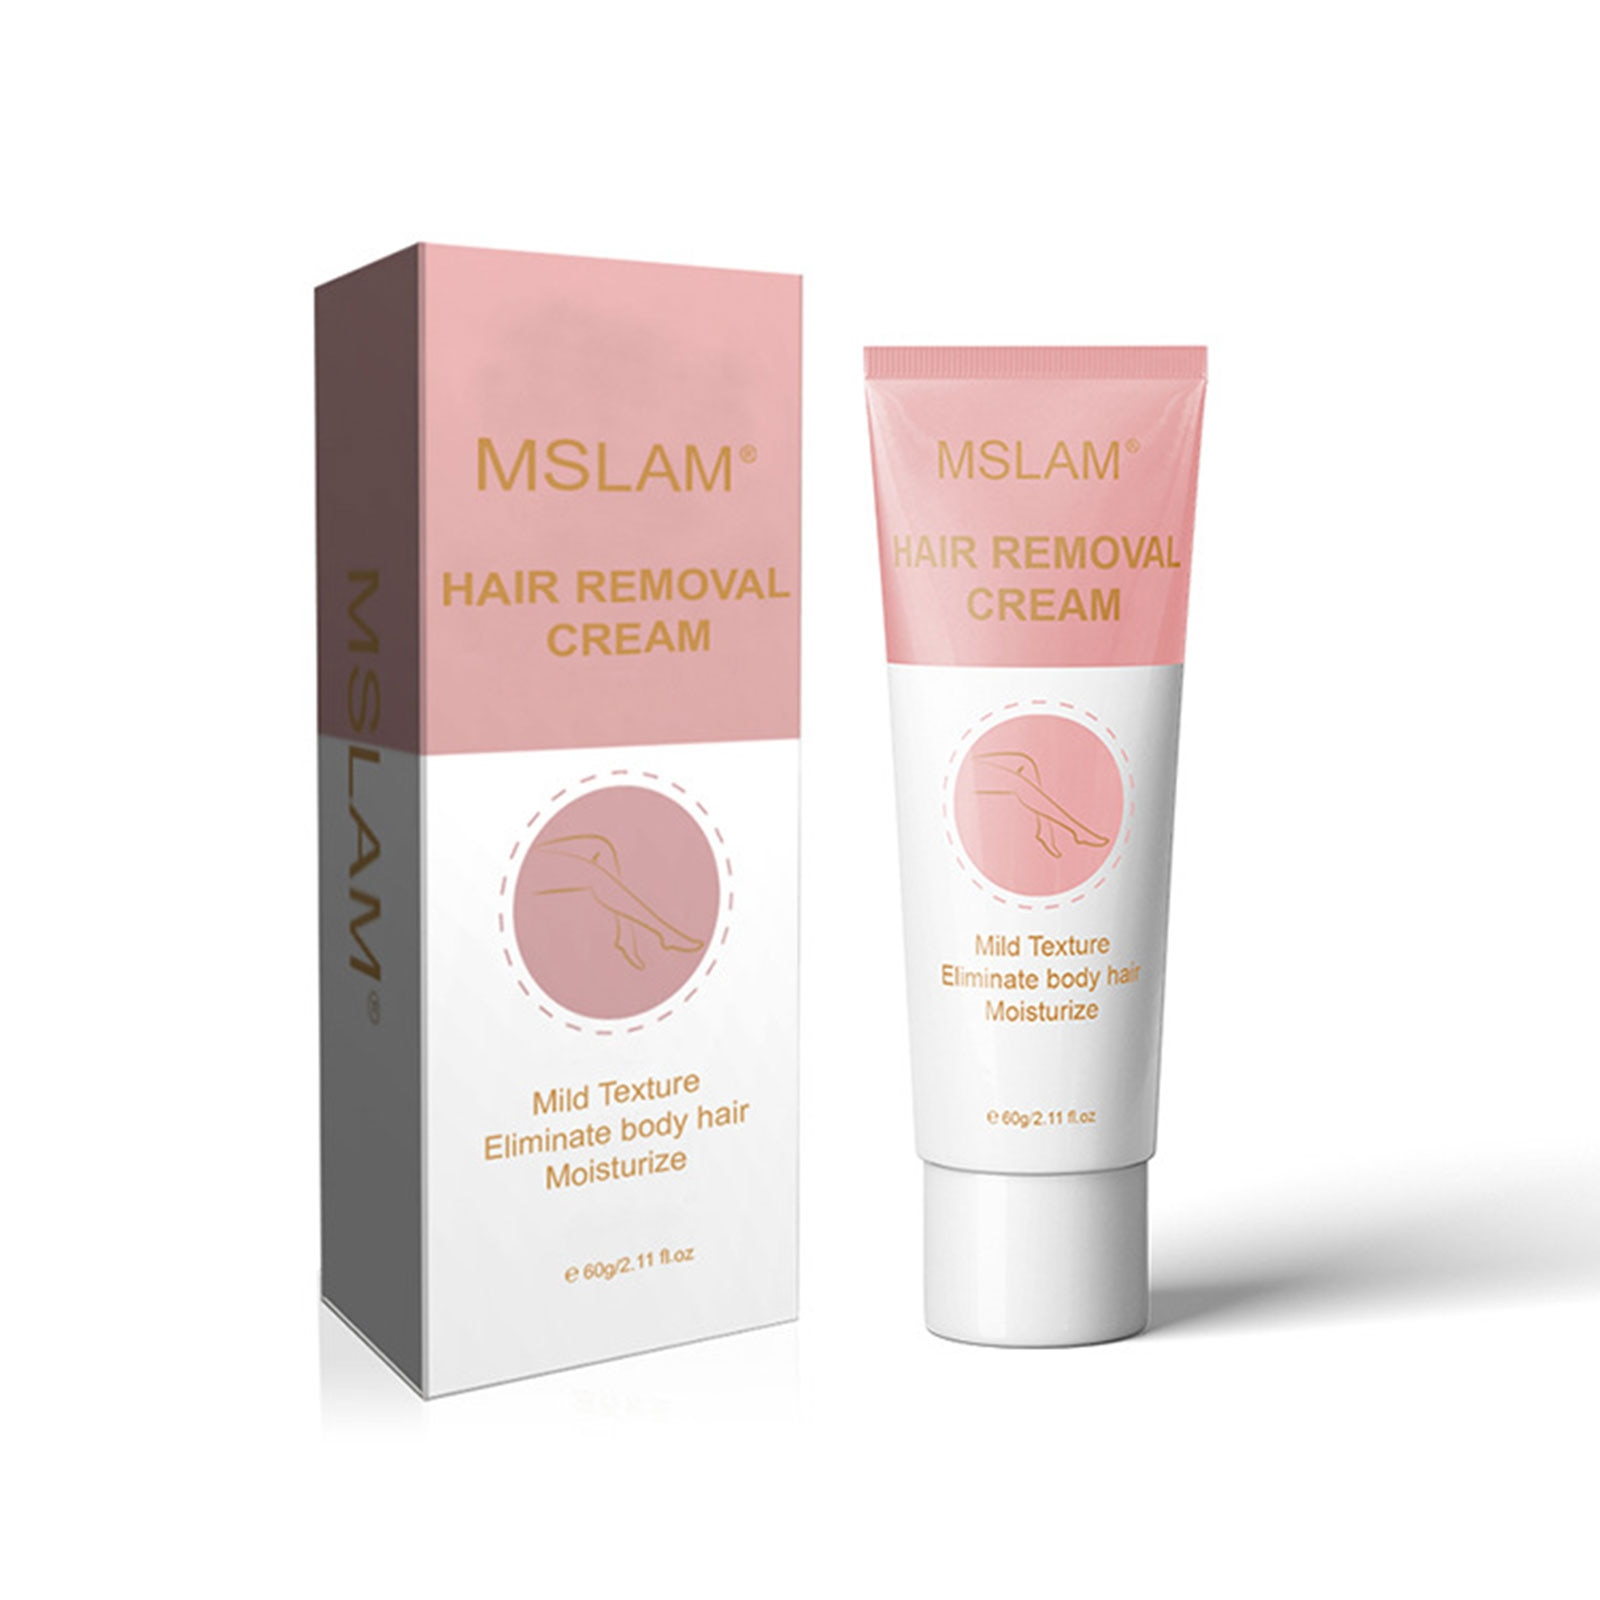 MSLAM Depilatory Cream Hair Removal Painless Cream For Removal Armpit Legs Hair Body Care Shaving And Hair Removal недорого